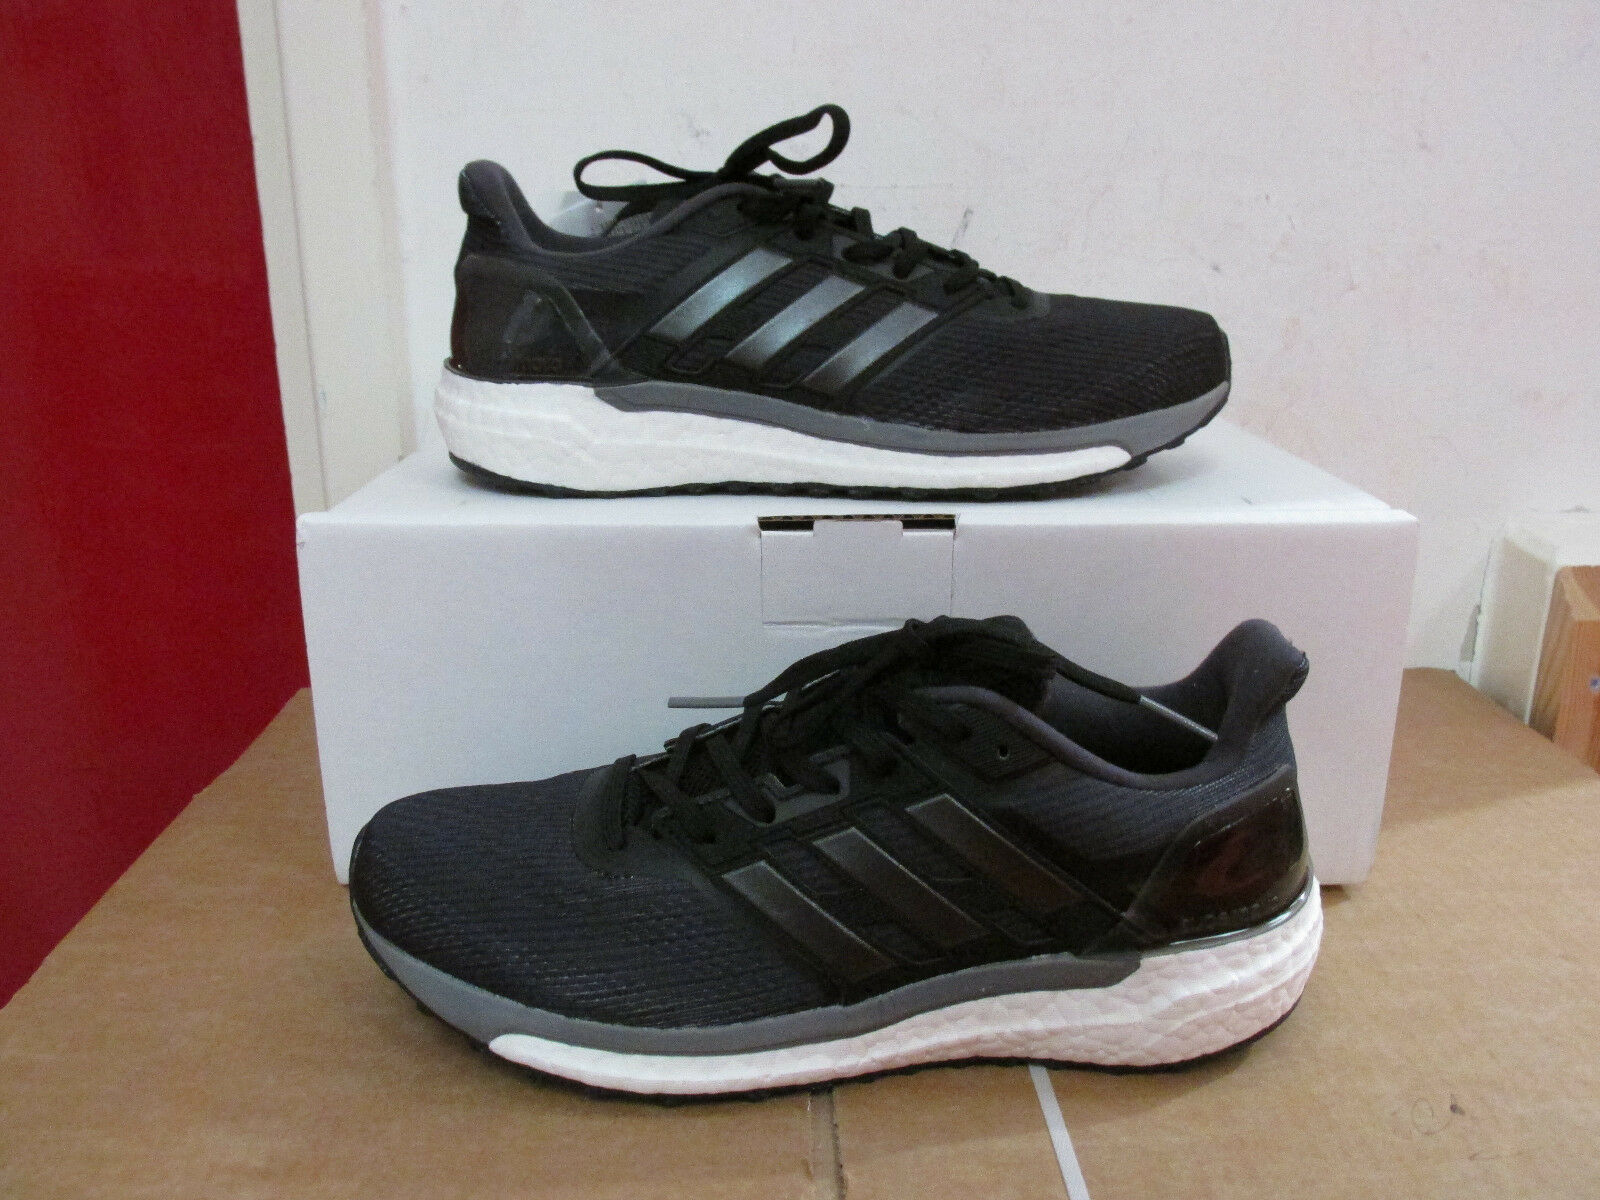 Adidas Originals supernova boost BB6035 Mens Running Trainers Sneakers CLEARANCE